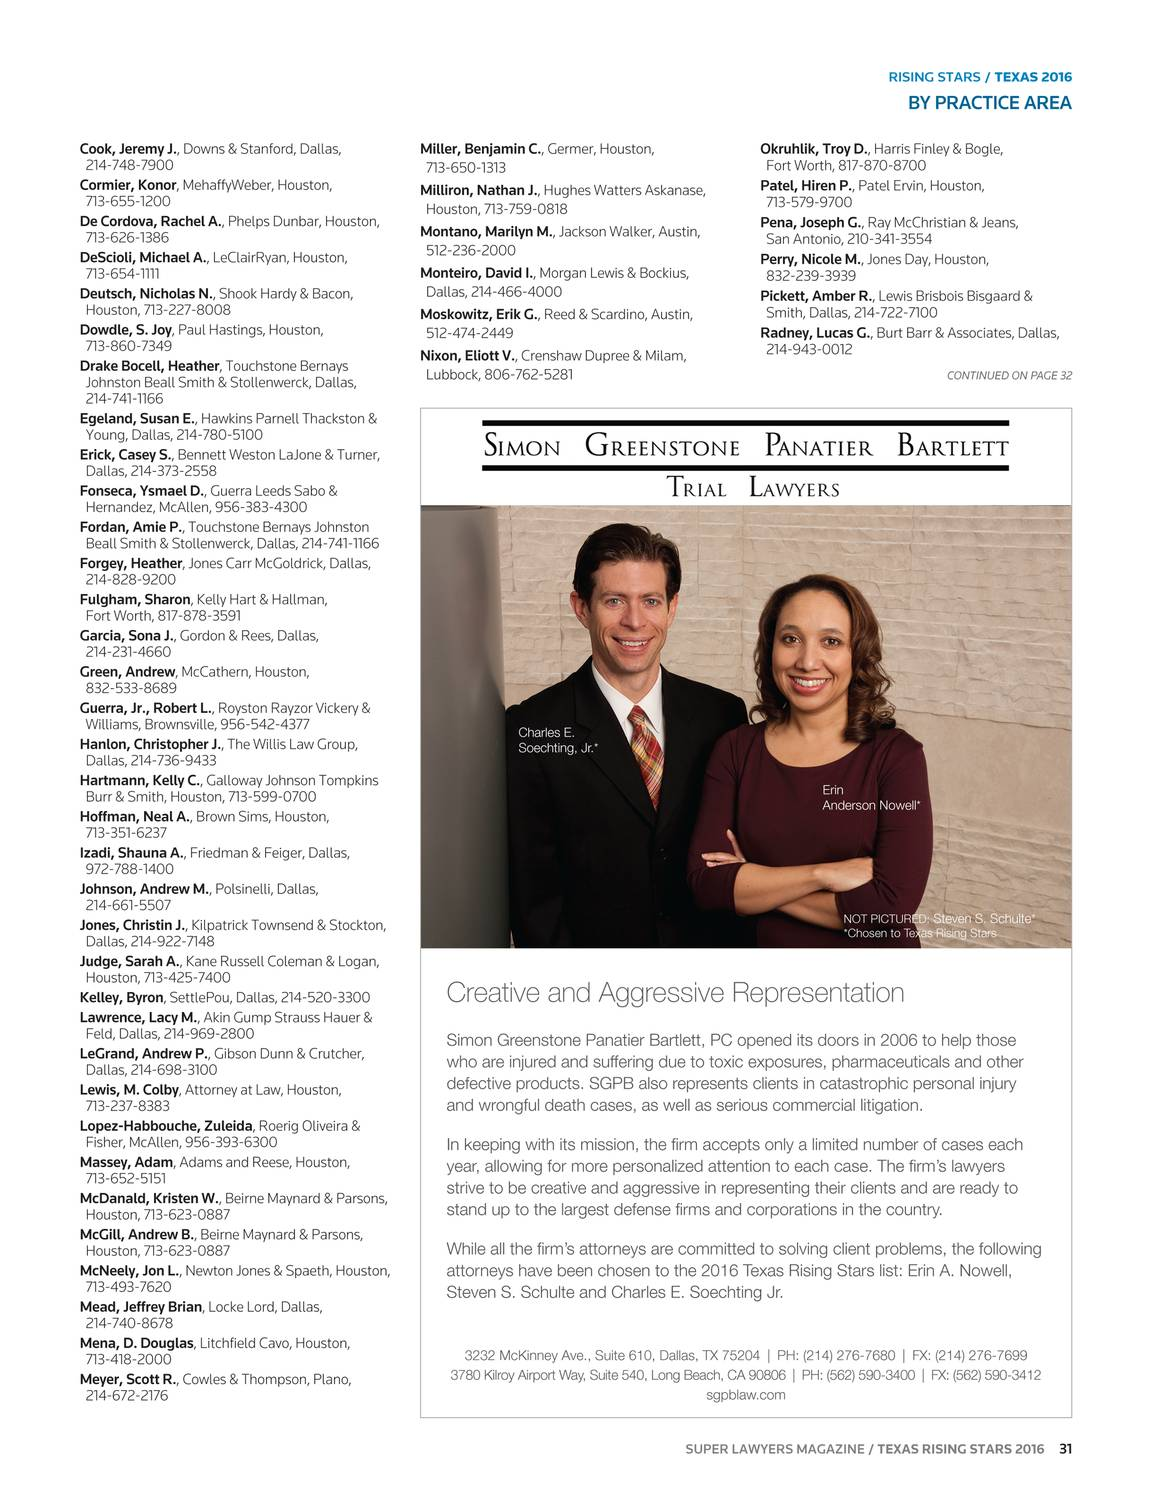 Super Lawyers - Texas Rising Stars 2016 - page 30